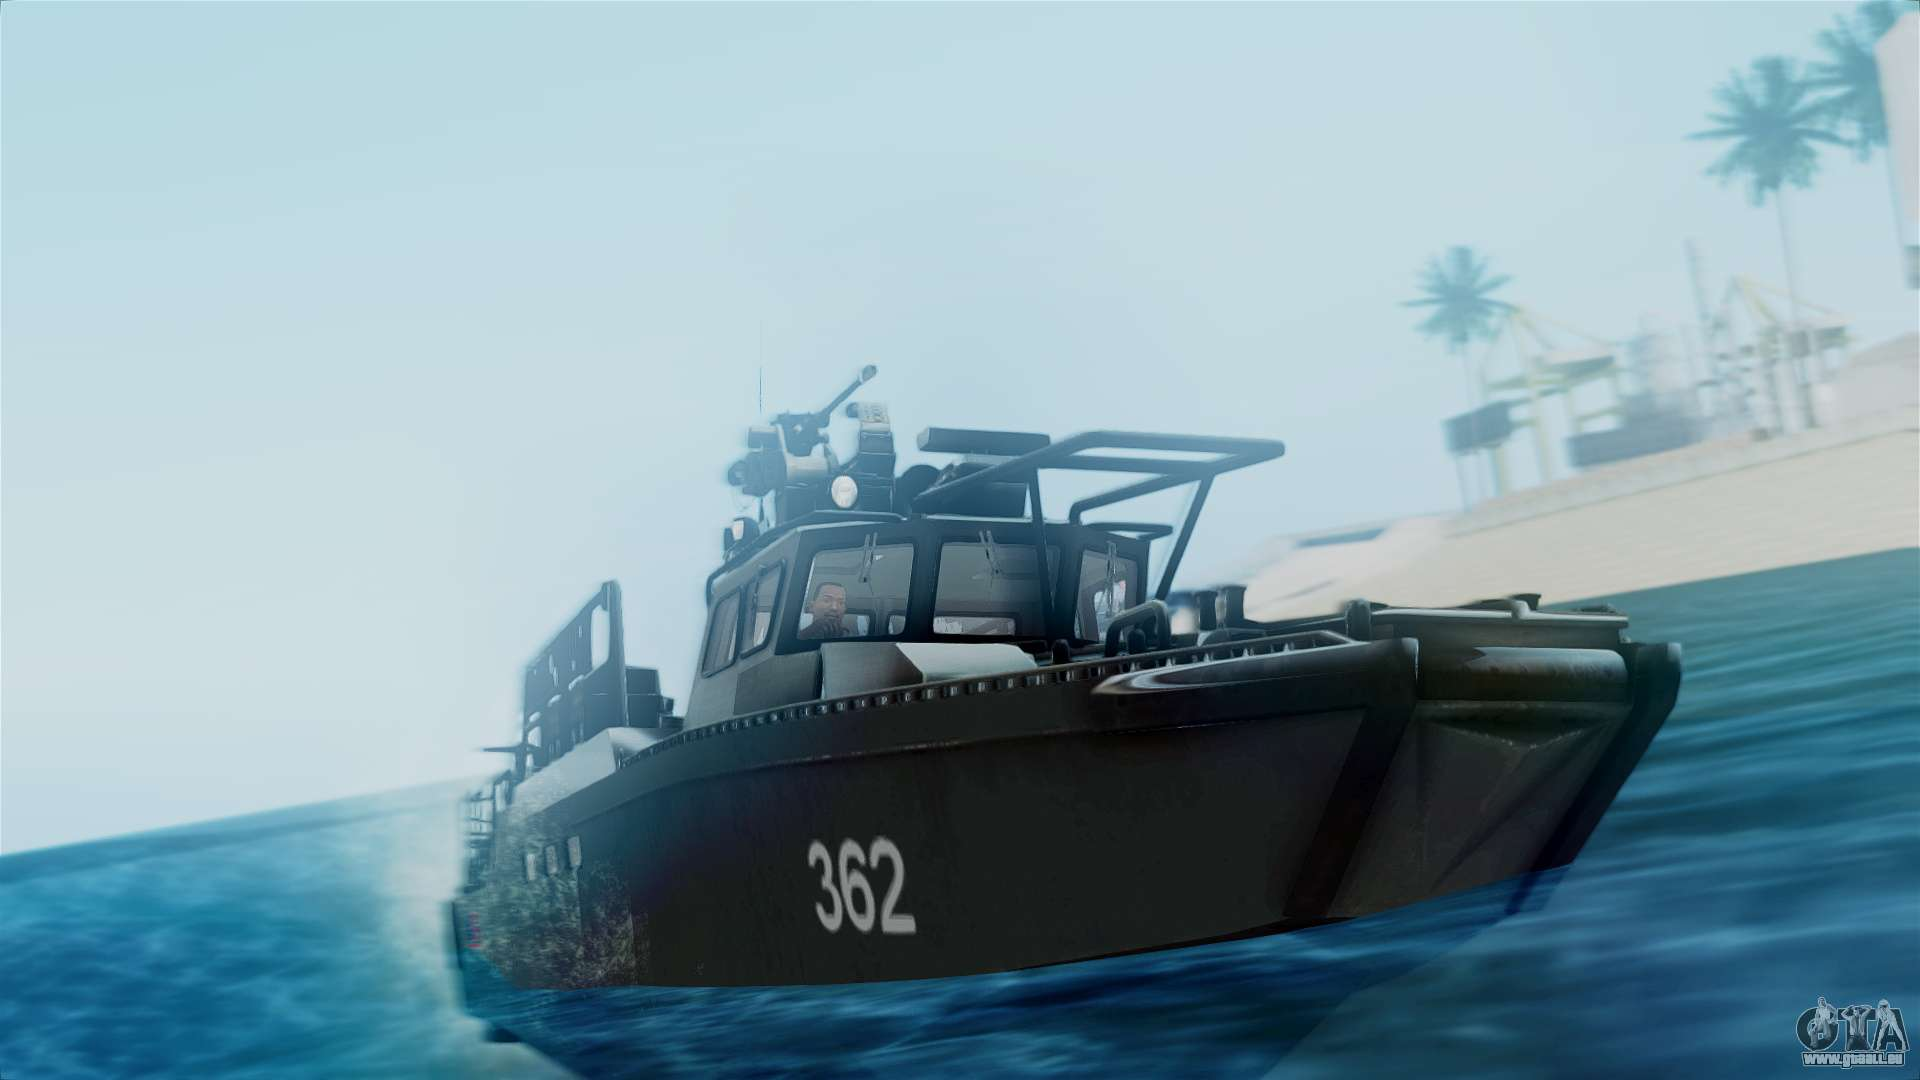 Cb90 class fast assault craft bf4 pour gta san andreas for Formulaire po ae artisanat